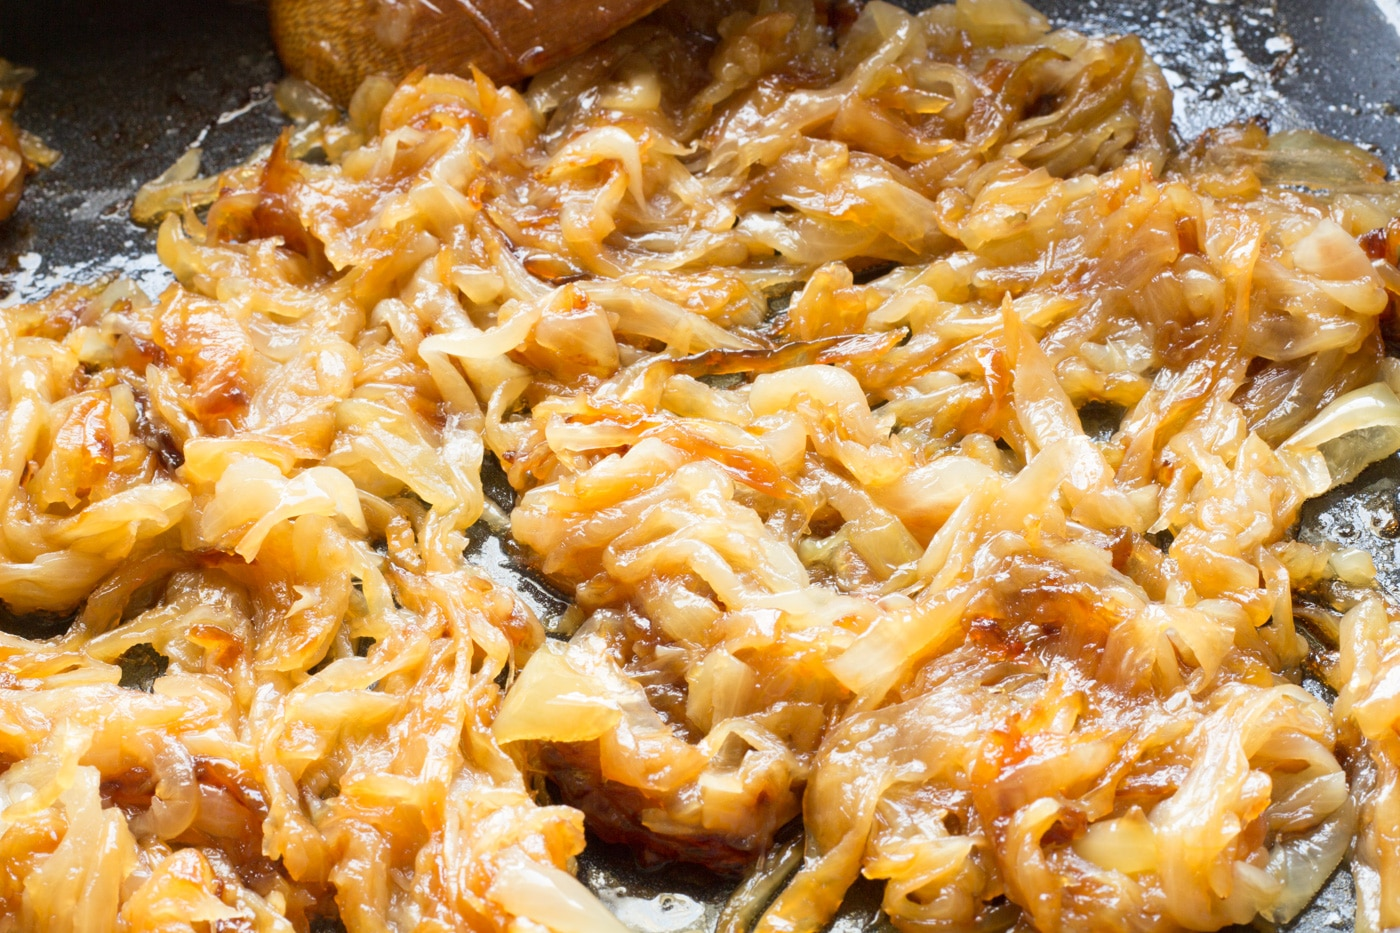 Caramelized onions cooking in an electric skillet